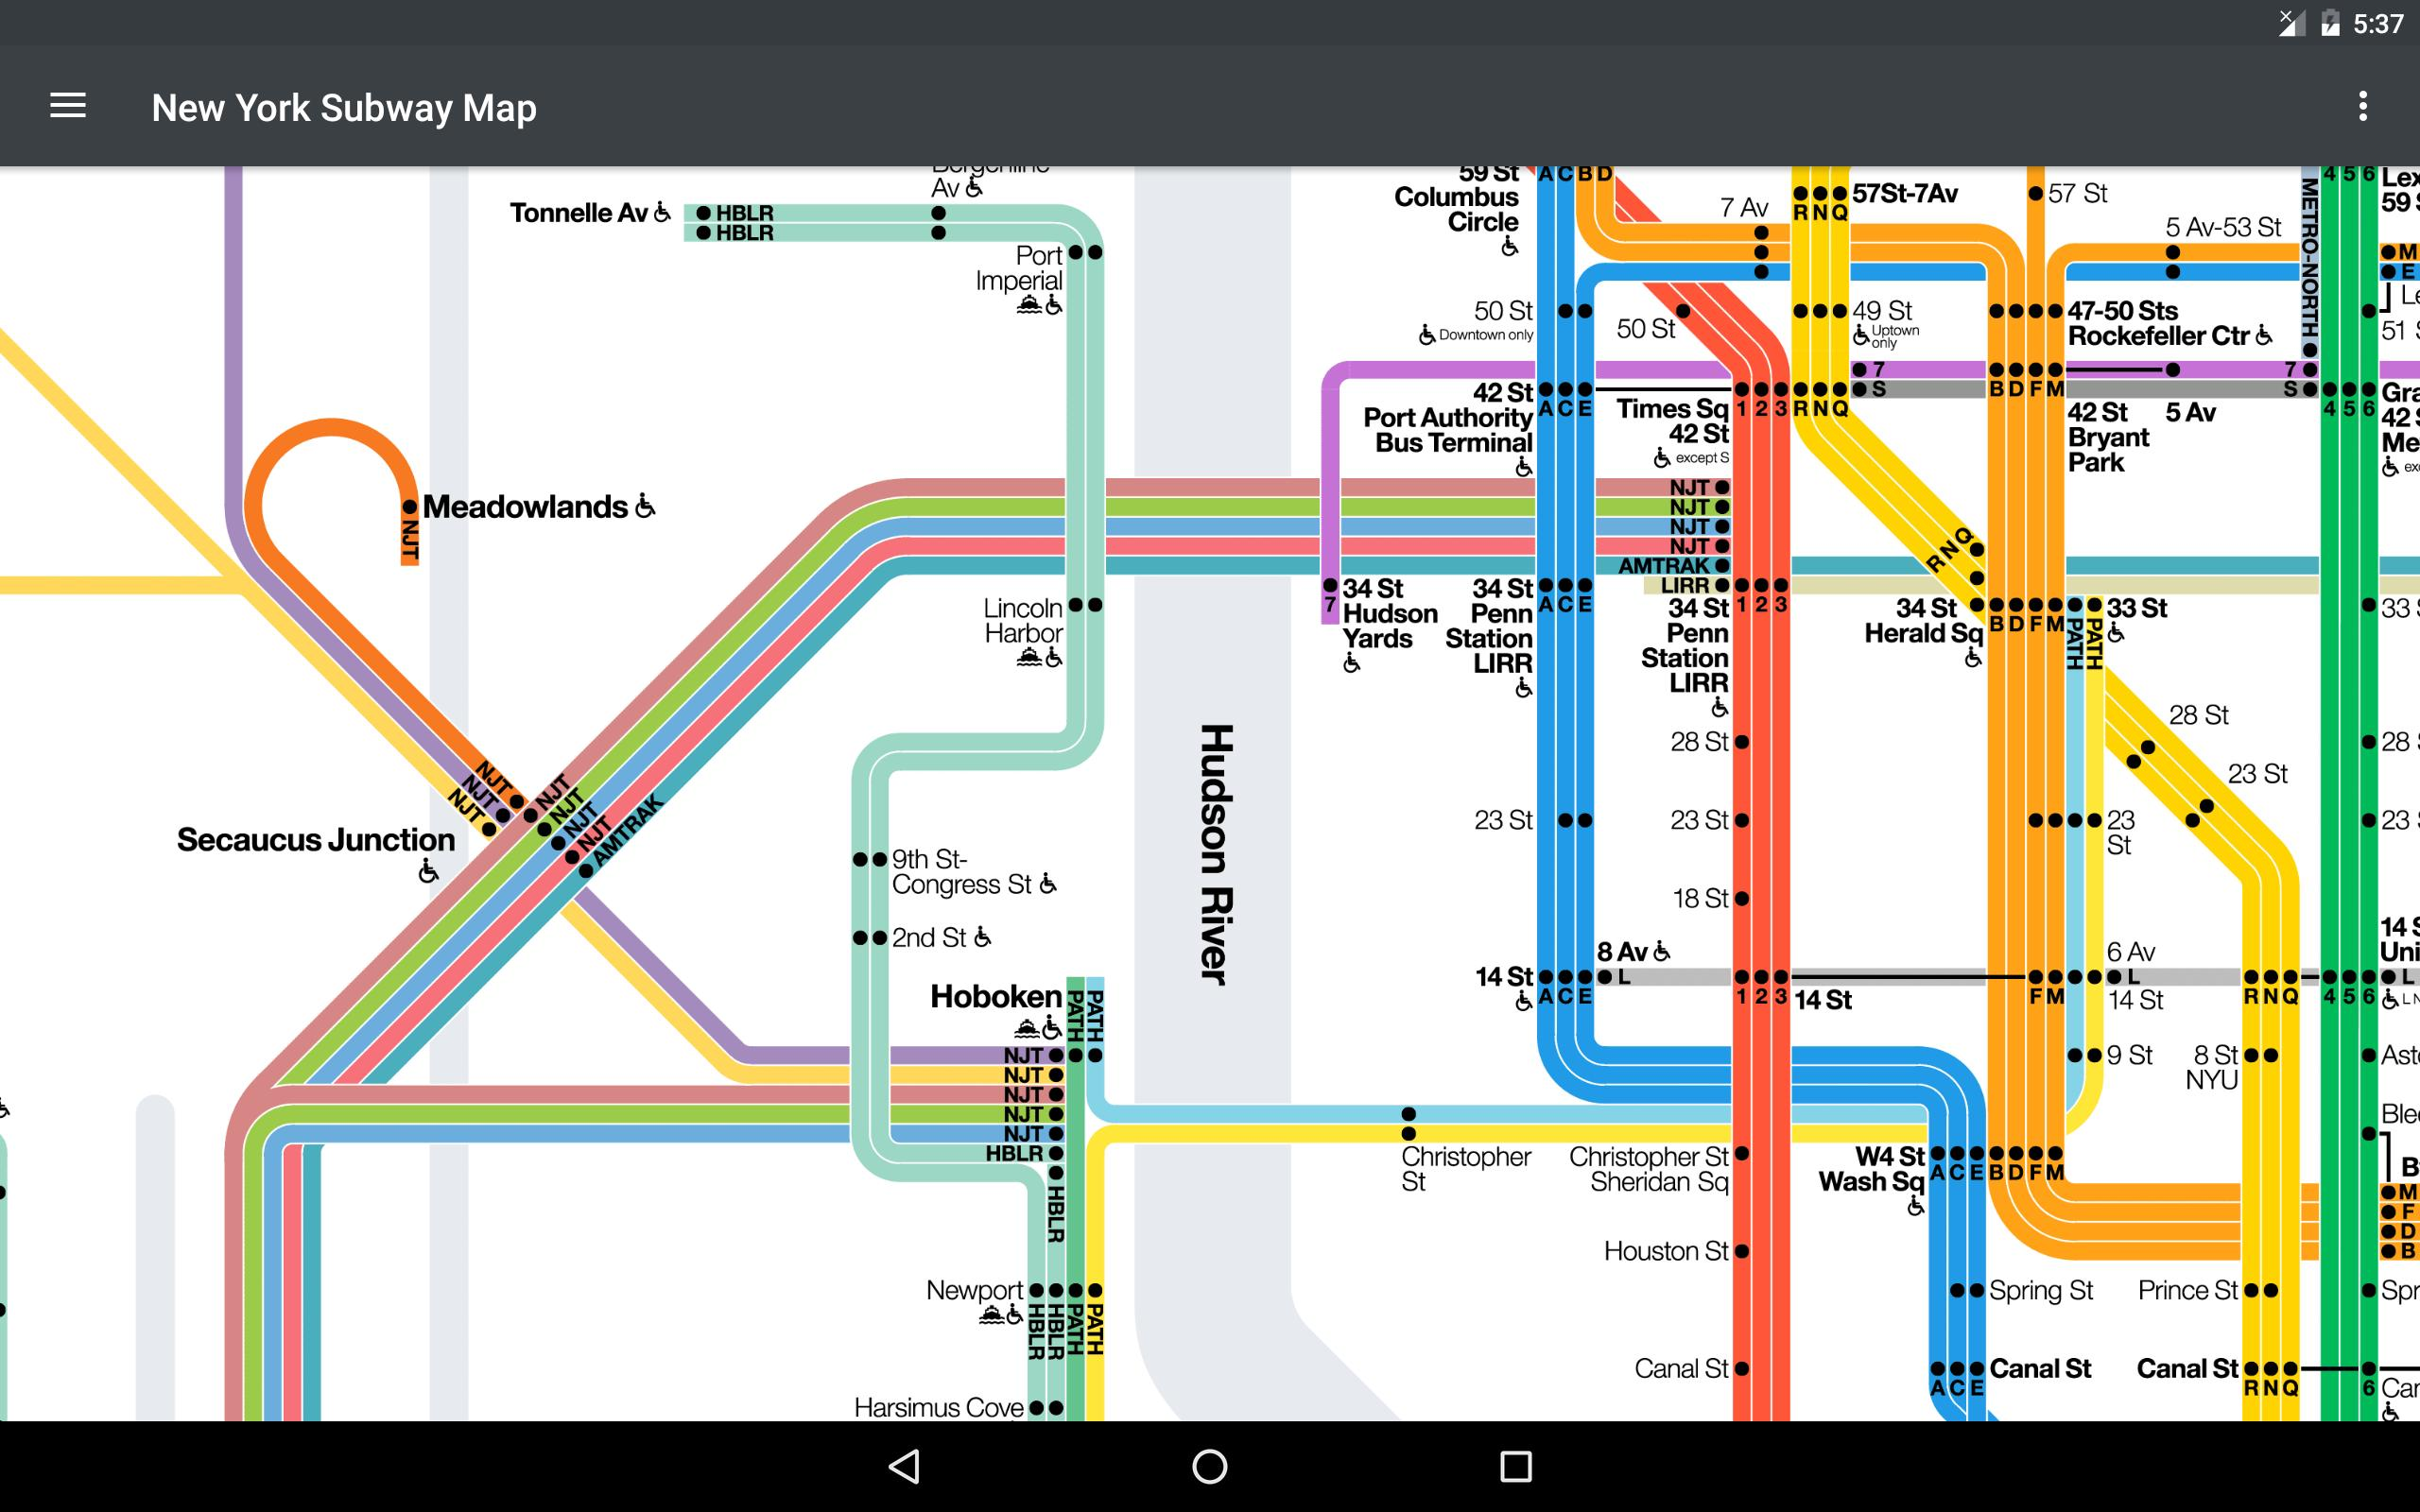 Download New York Subway Map.New York Subway Map For Android Apk Download